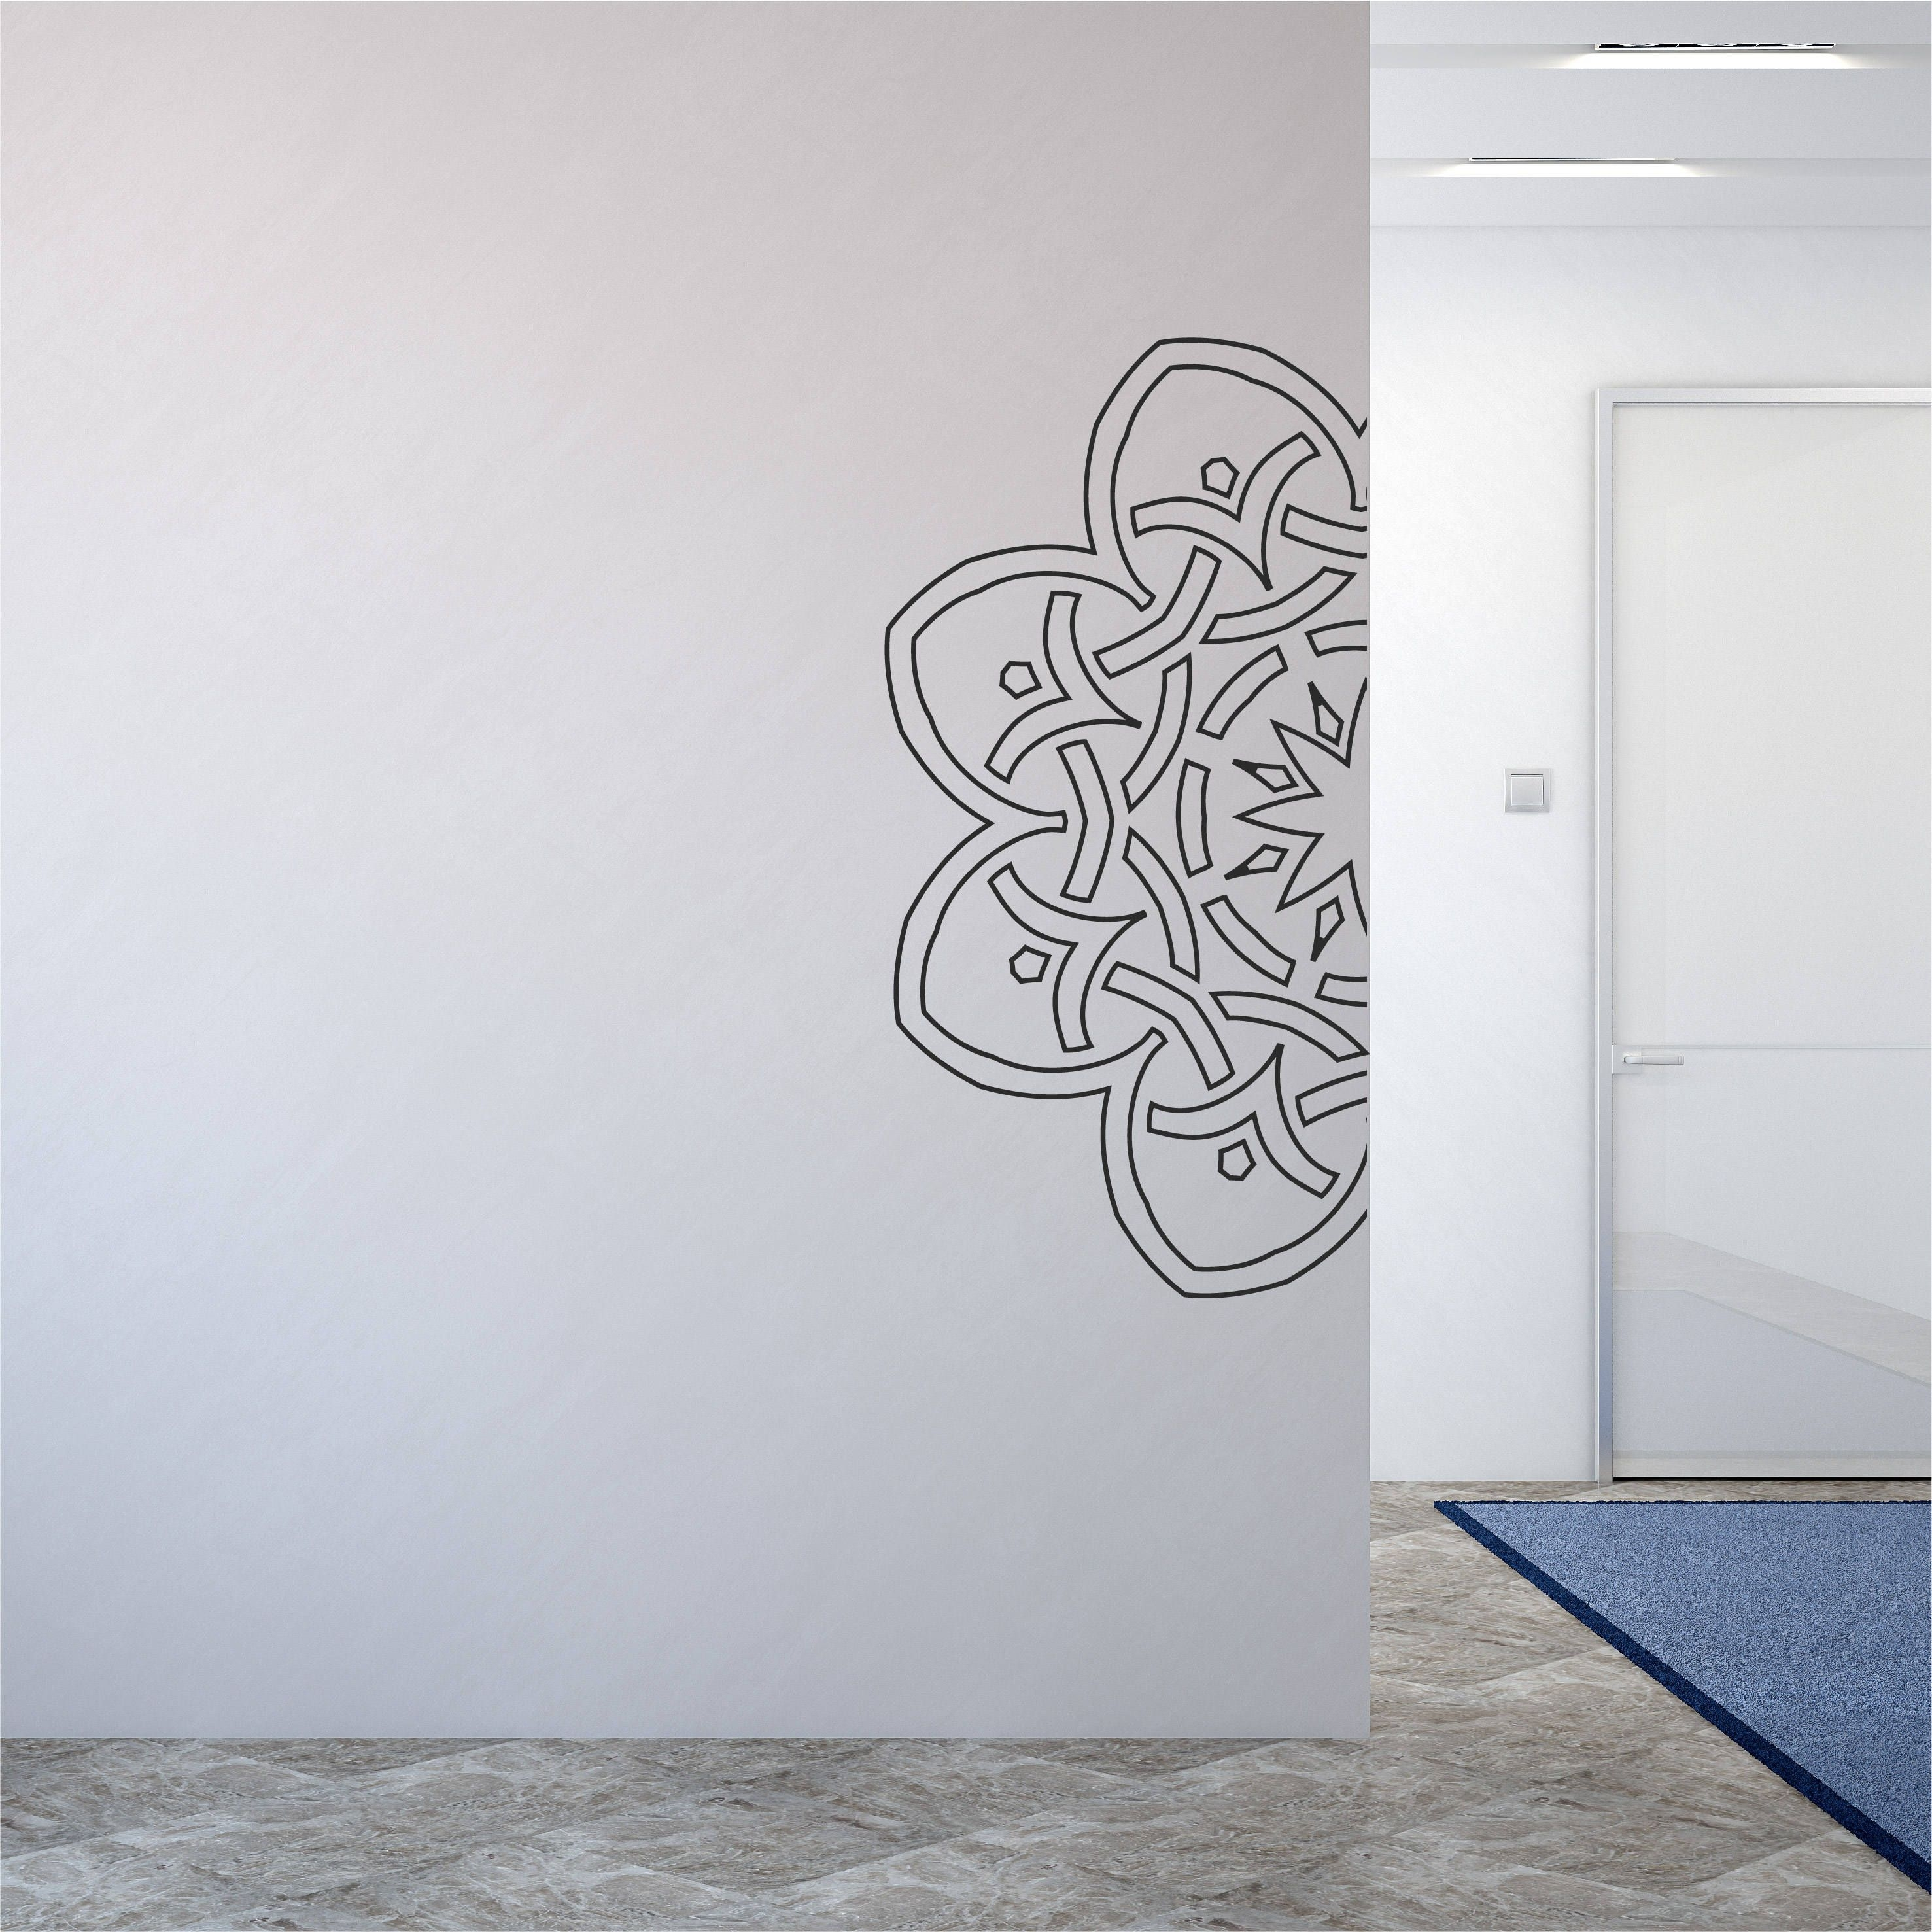 Henna Wall Decal Geometric Wall Sticker Pattern Design Hippie Decor intended for Henna Wall Art (Image 14 of 20)